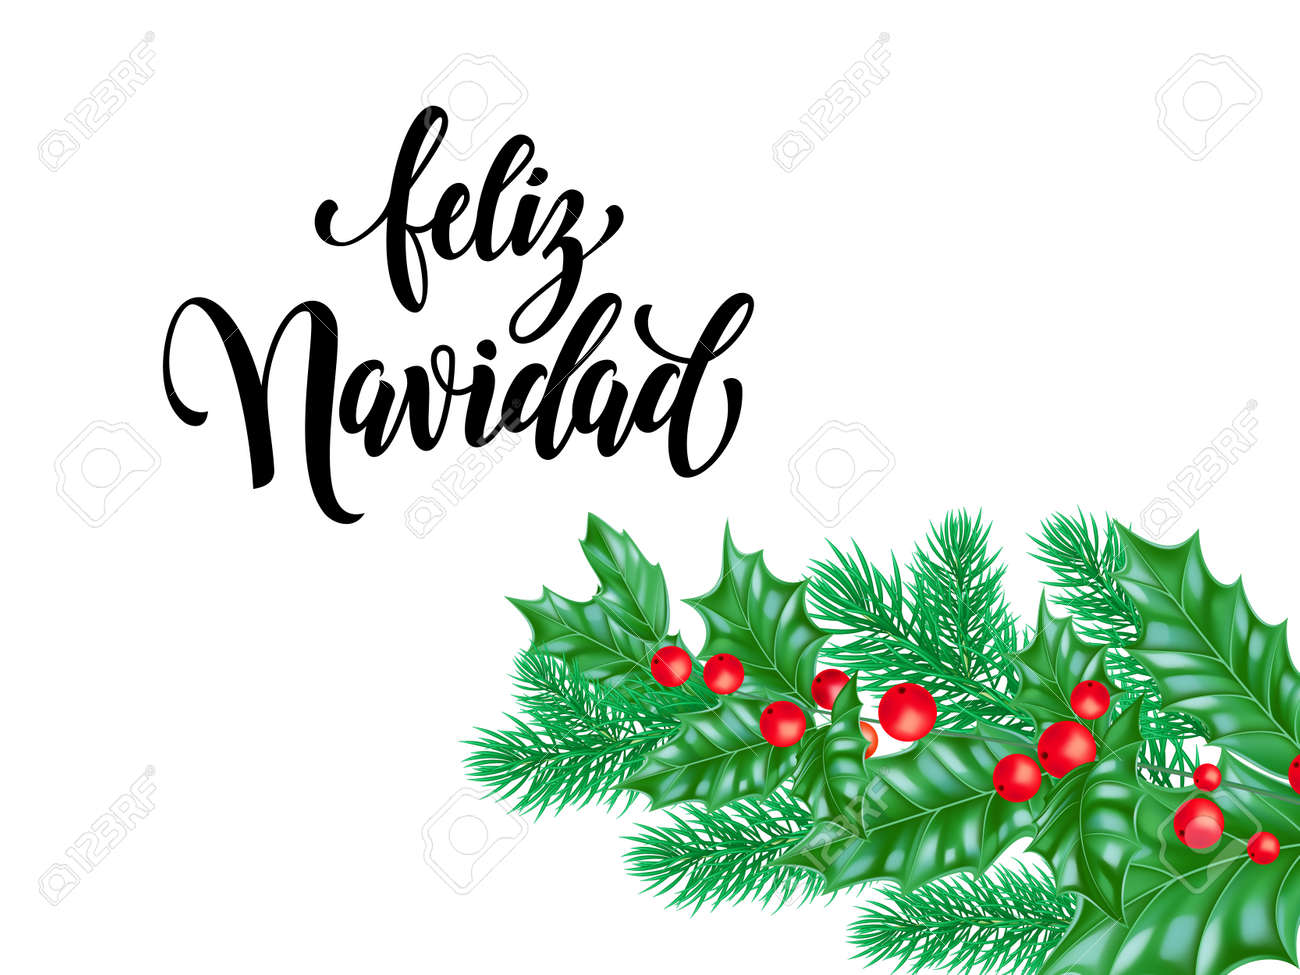 Christmas Spanish.Feliz Navidad Spanish Merry Christmas Holiday Hand Drawn Quote